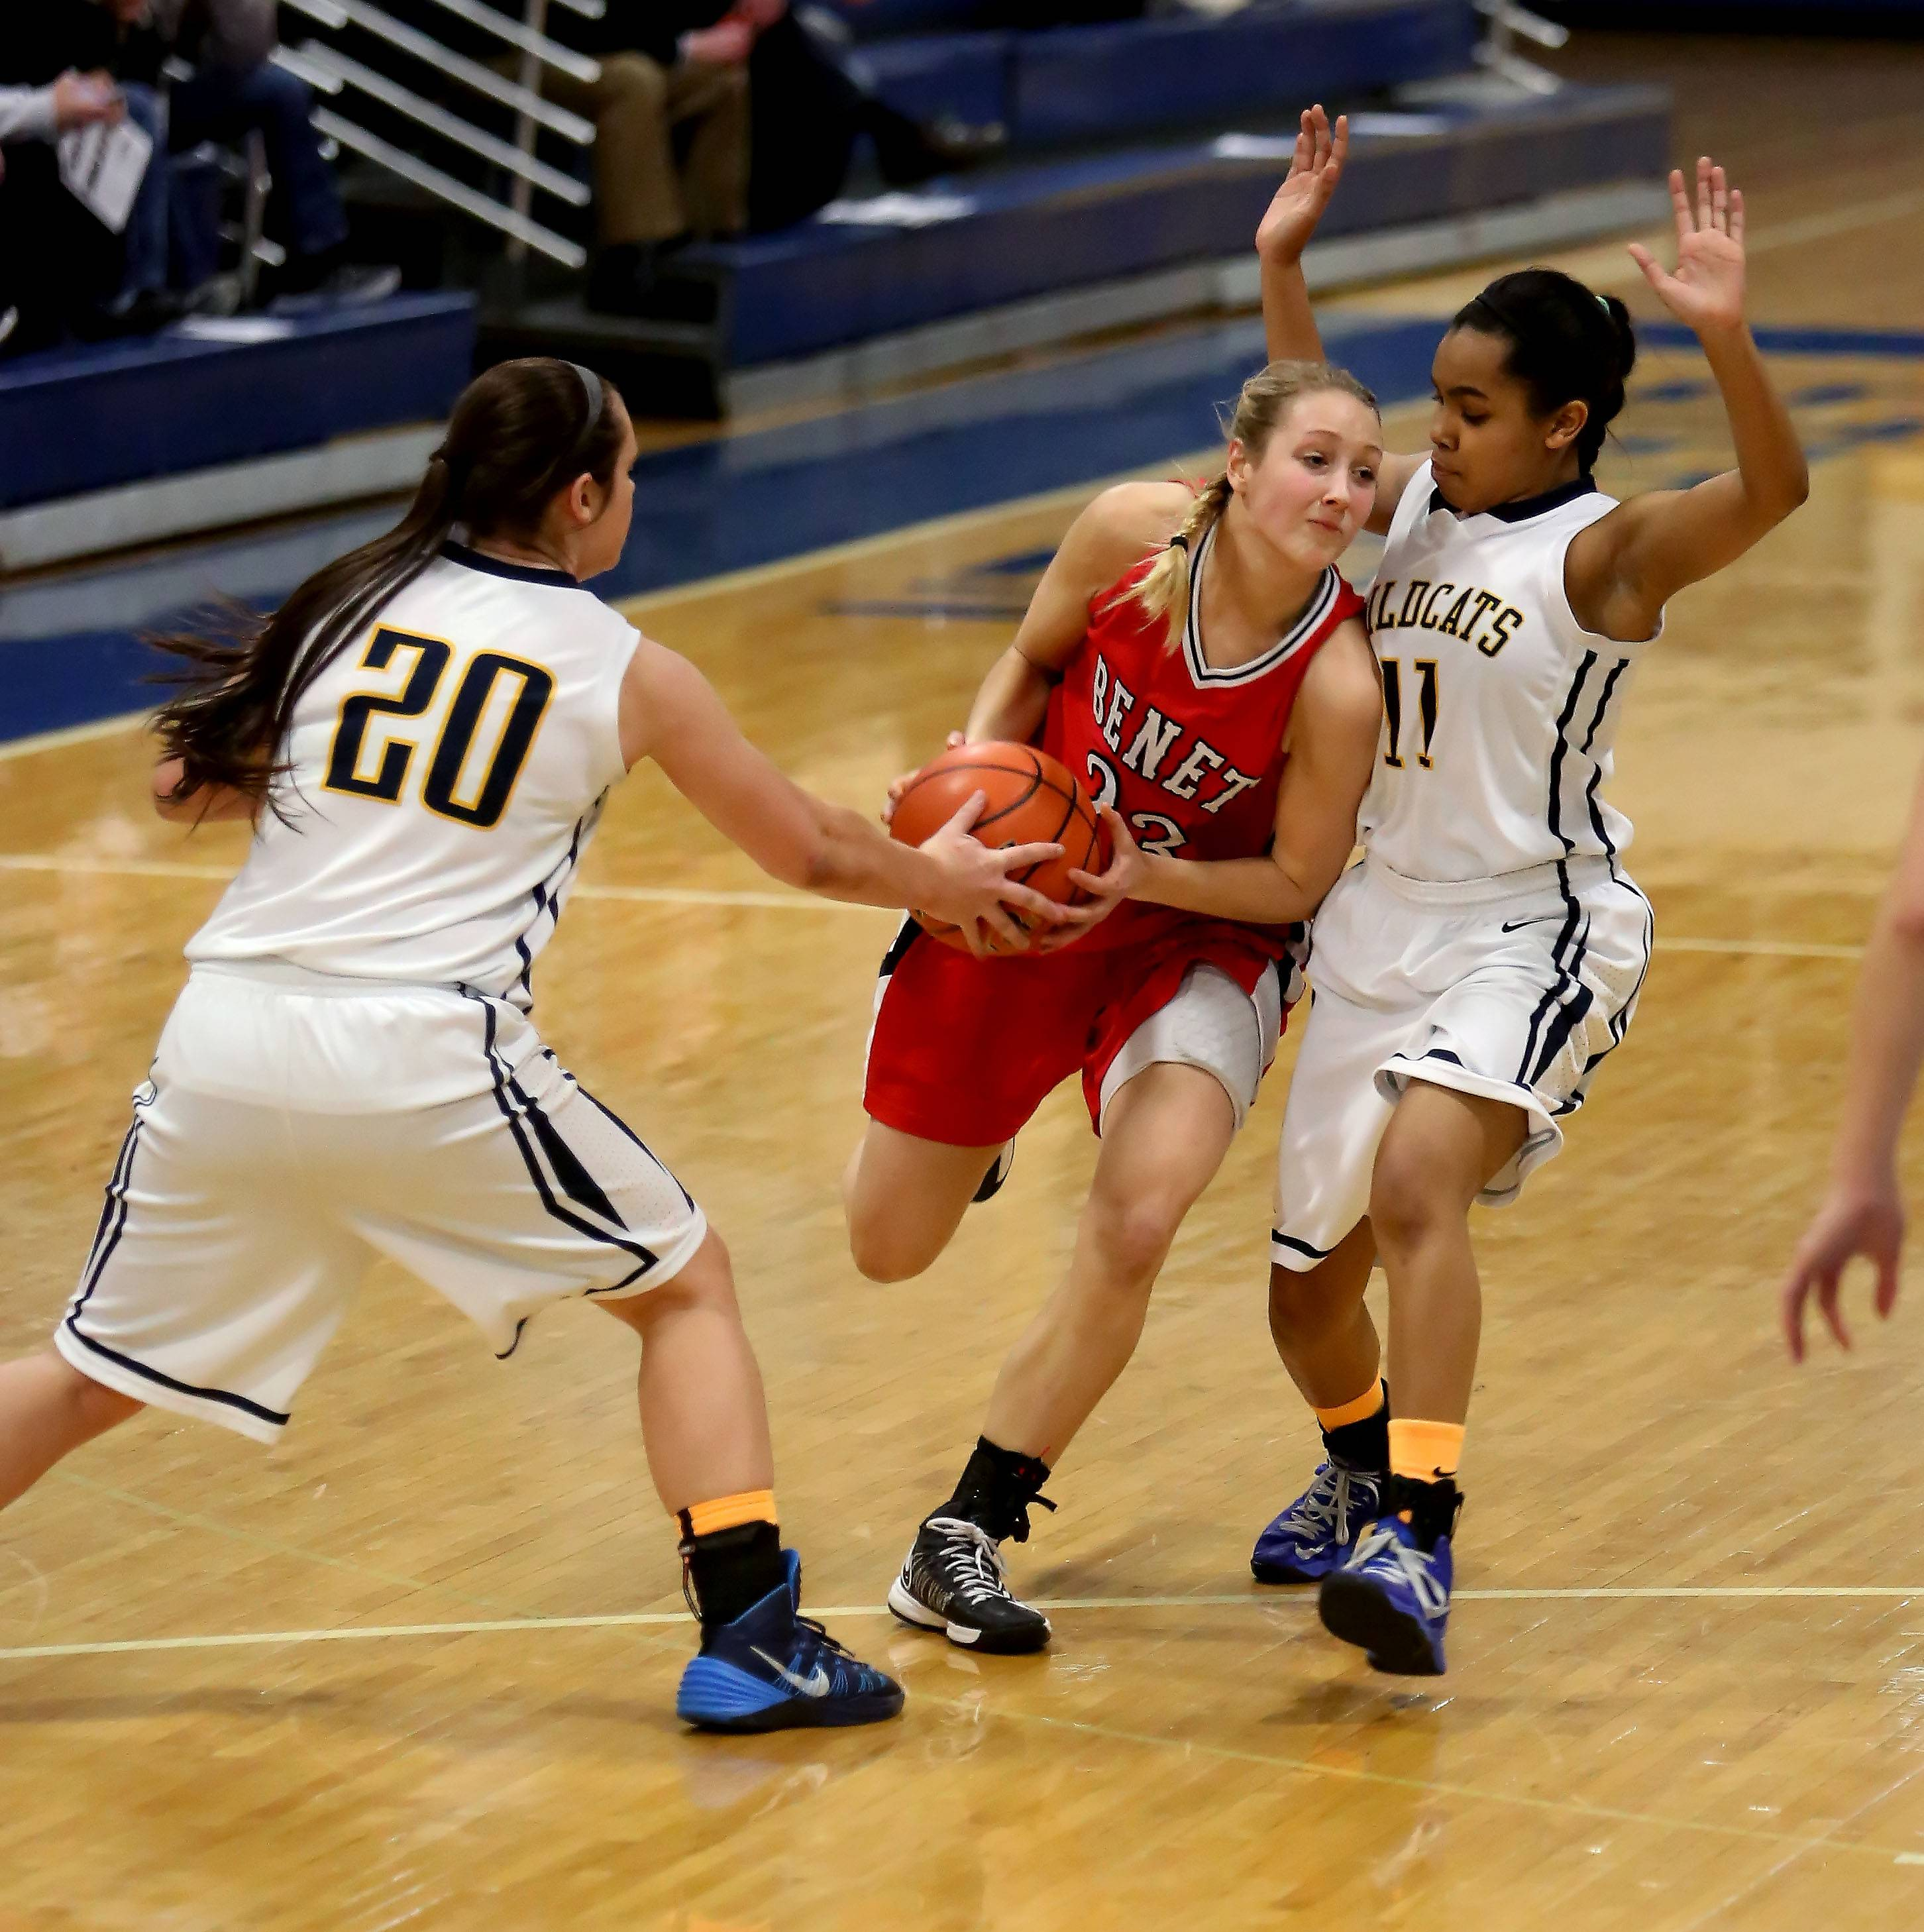 Benet Academy's Emily Eshoo, center, gets caught in between Kai Moon, right and Niki Lazar, left, of Neuqua Valley.